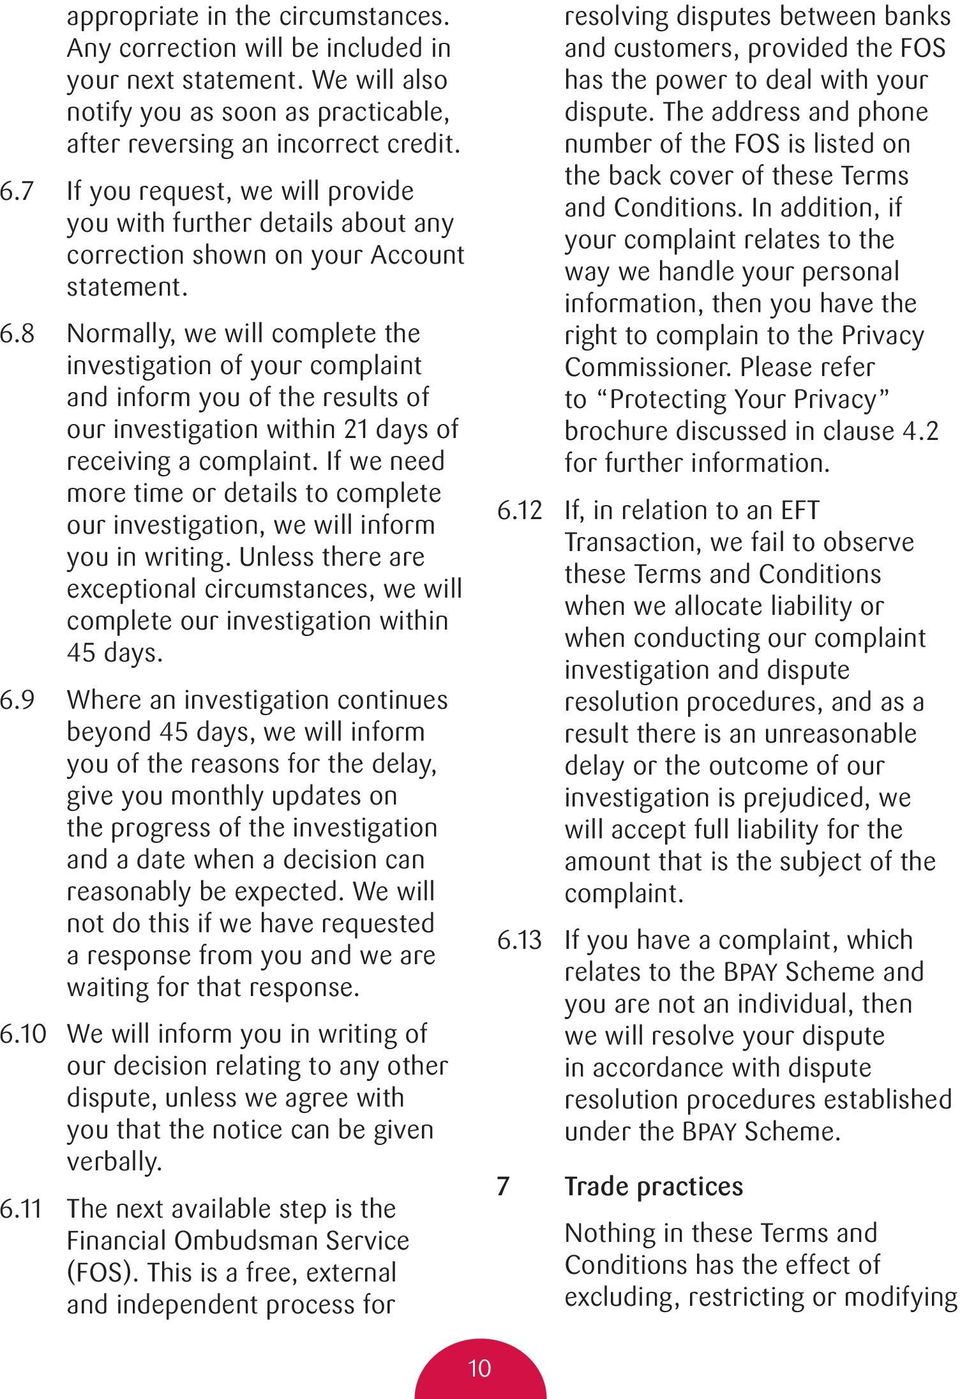 8 Normally, we will complete the investigation of your complaint and inform you of the results of our investigation within 21 days of receiving a complaint.